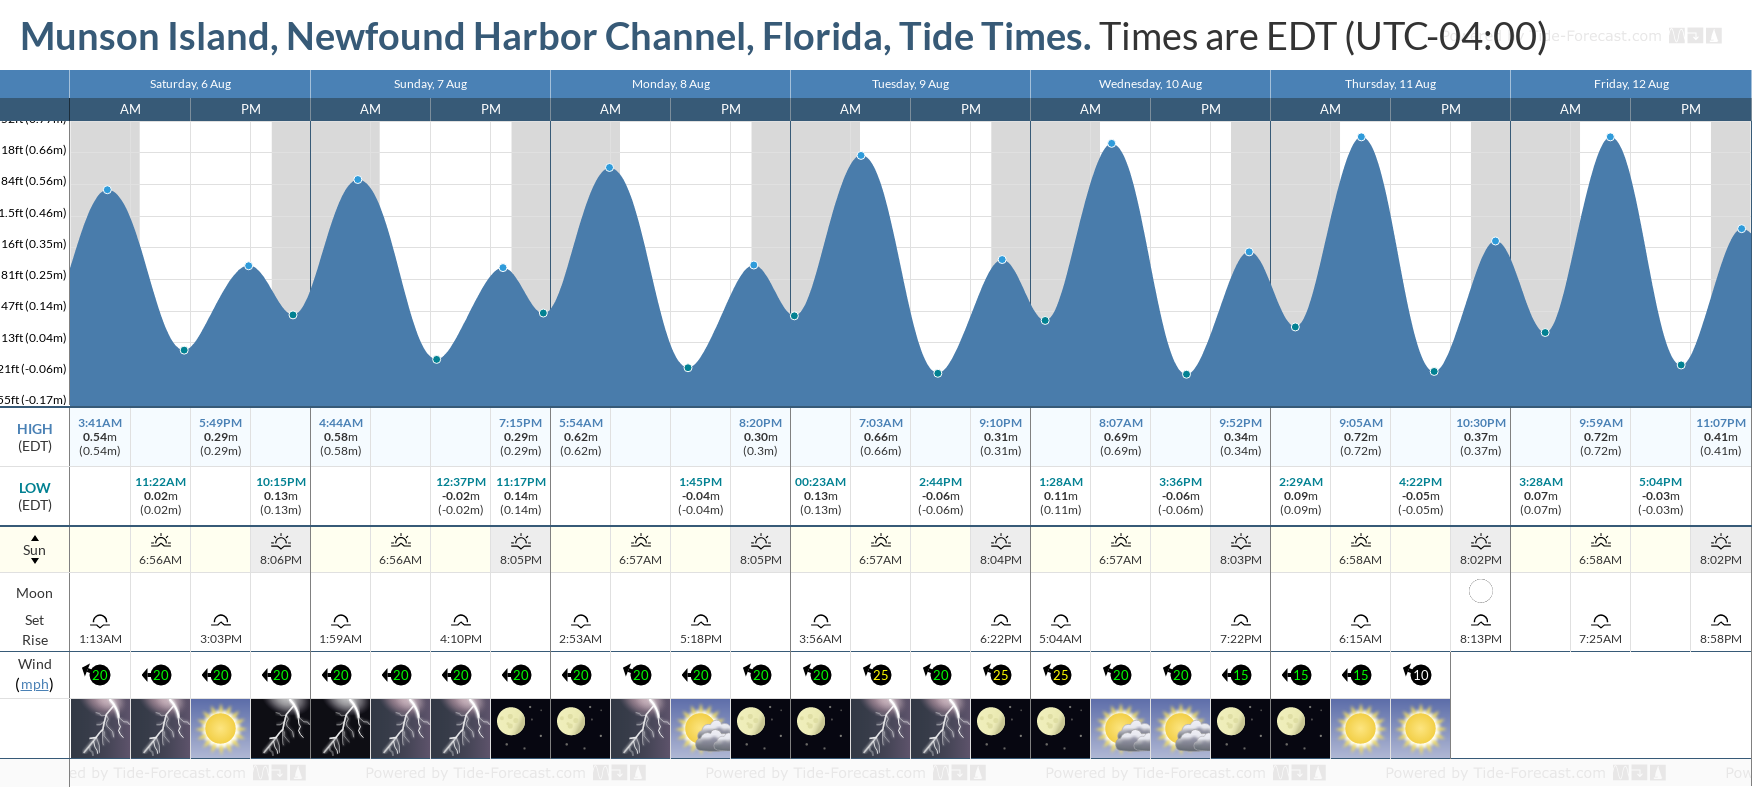 Munson Island, Newfound Harbor Channel, Florida Tide Chart including high and low tide tide times for the next 7 days